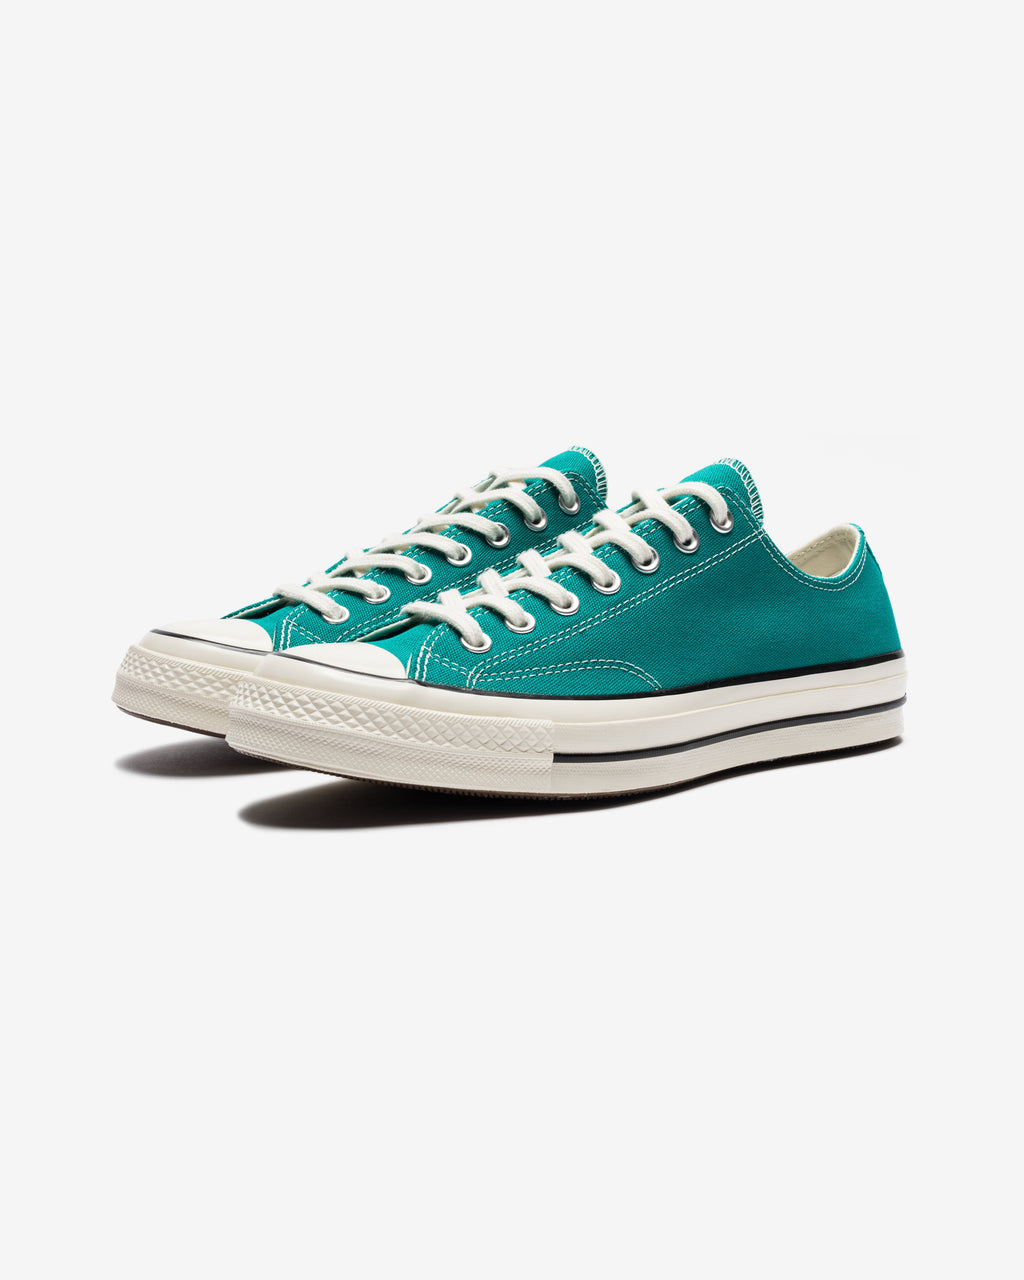 CHUCK 70 OX - MALACHITE/ BLACK/ EGRET